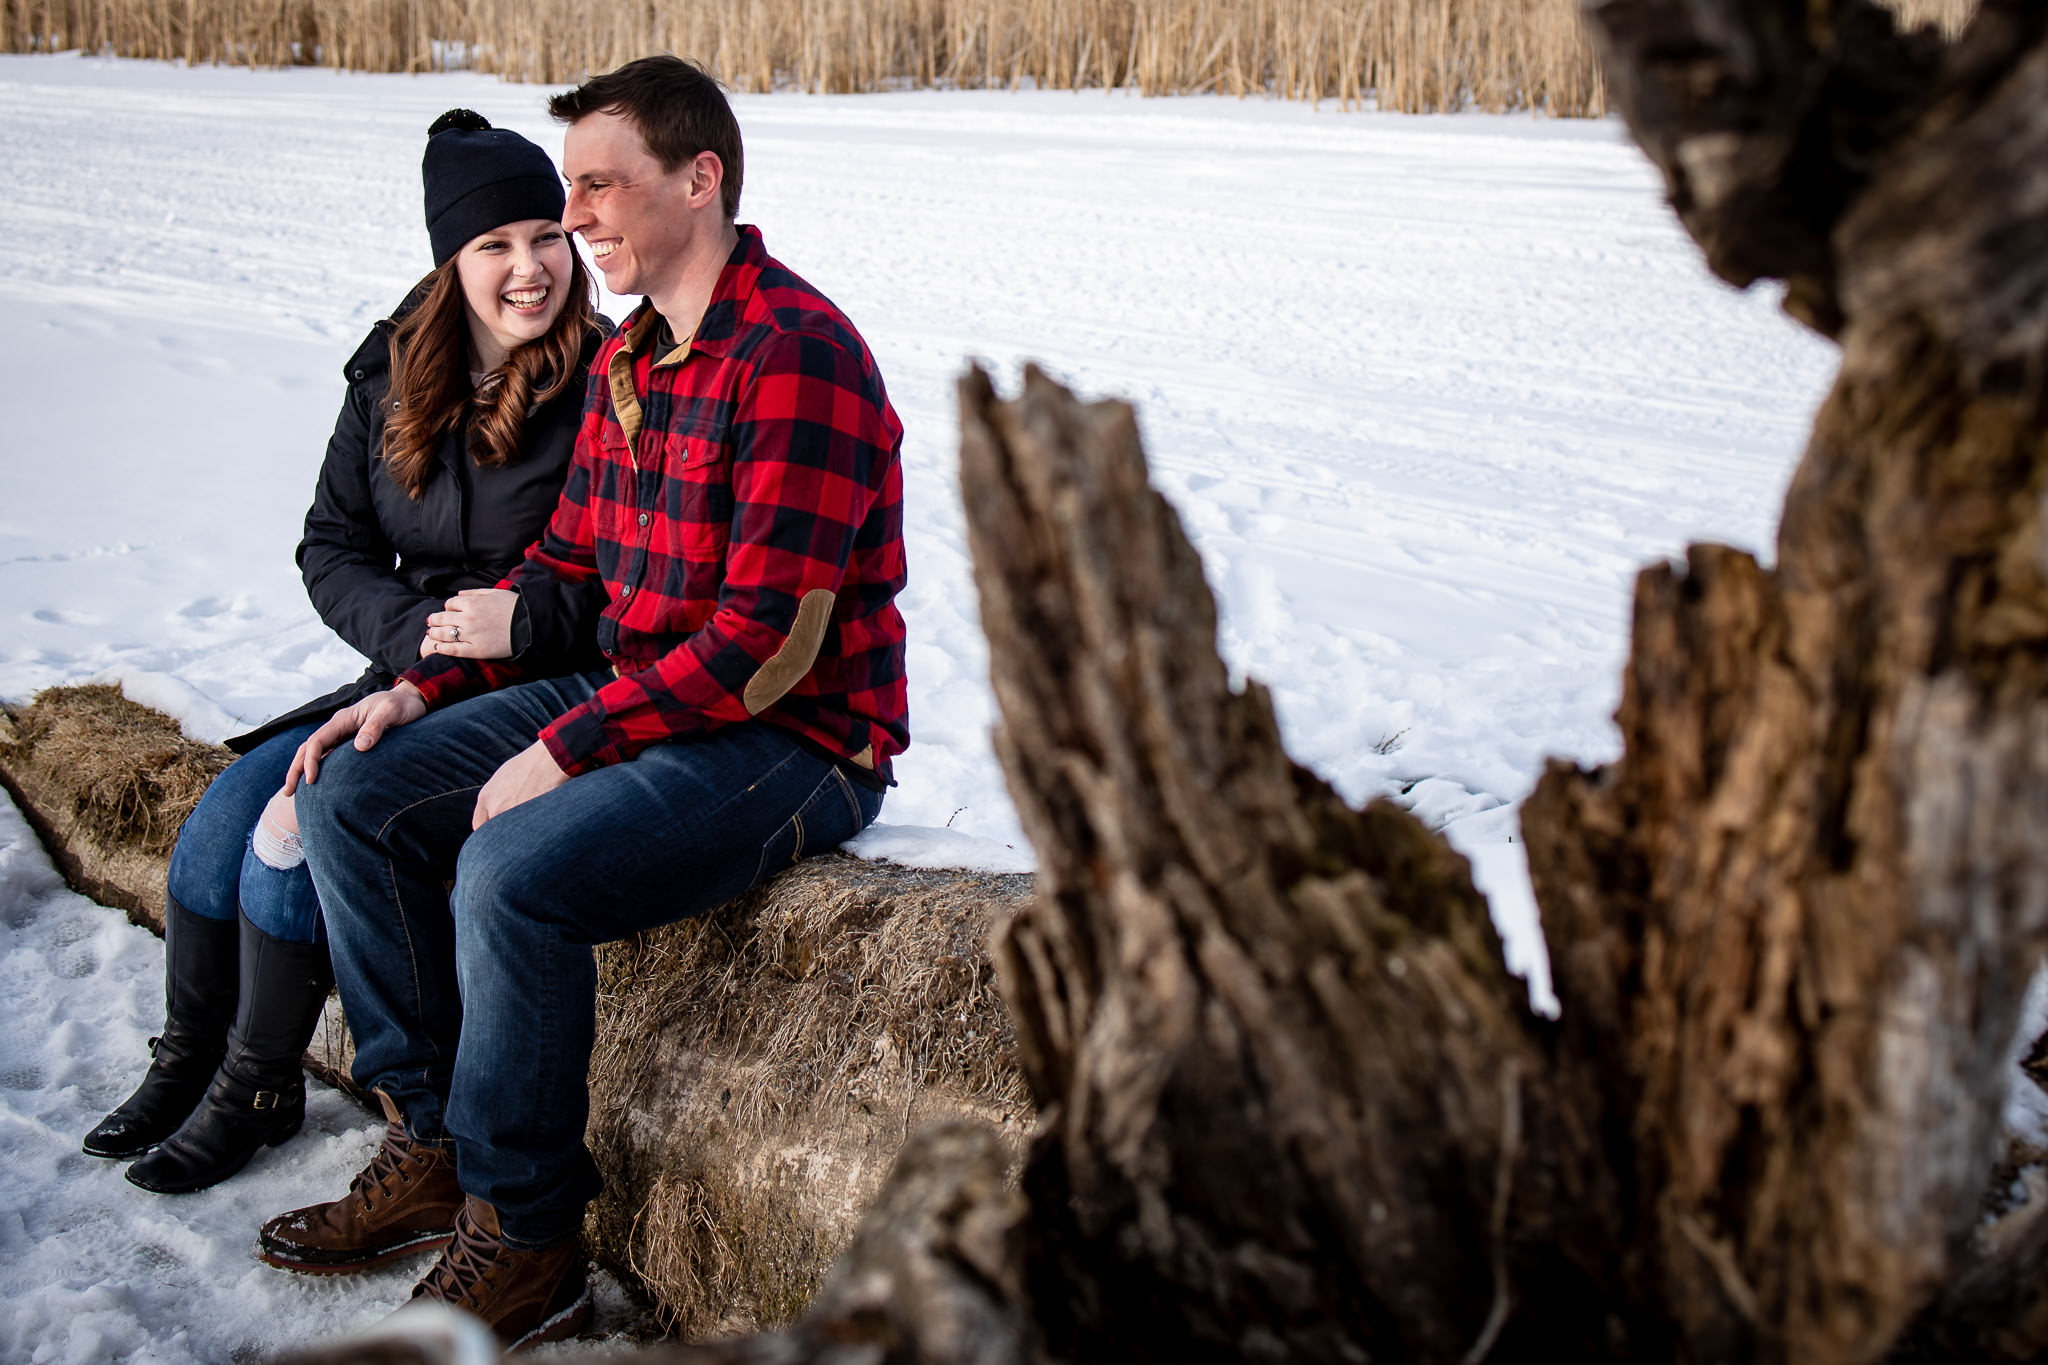 ice-skating-hockey-engagement-photos-14.jpg